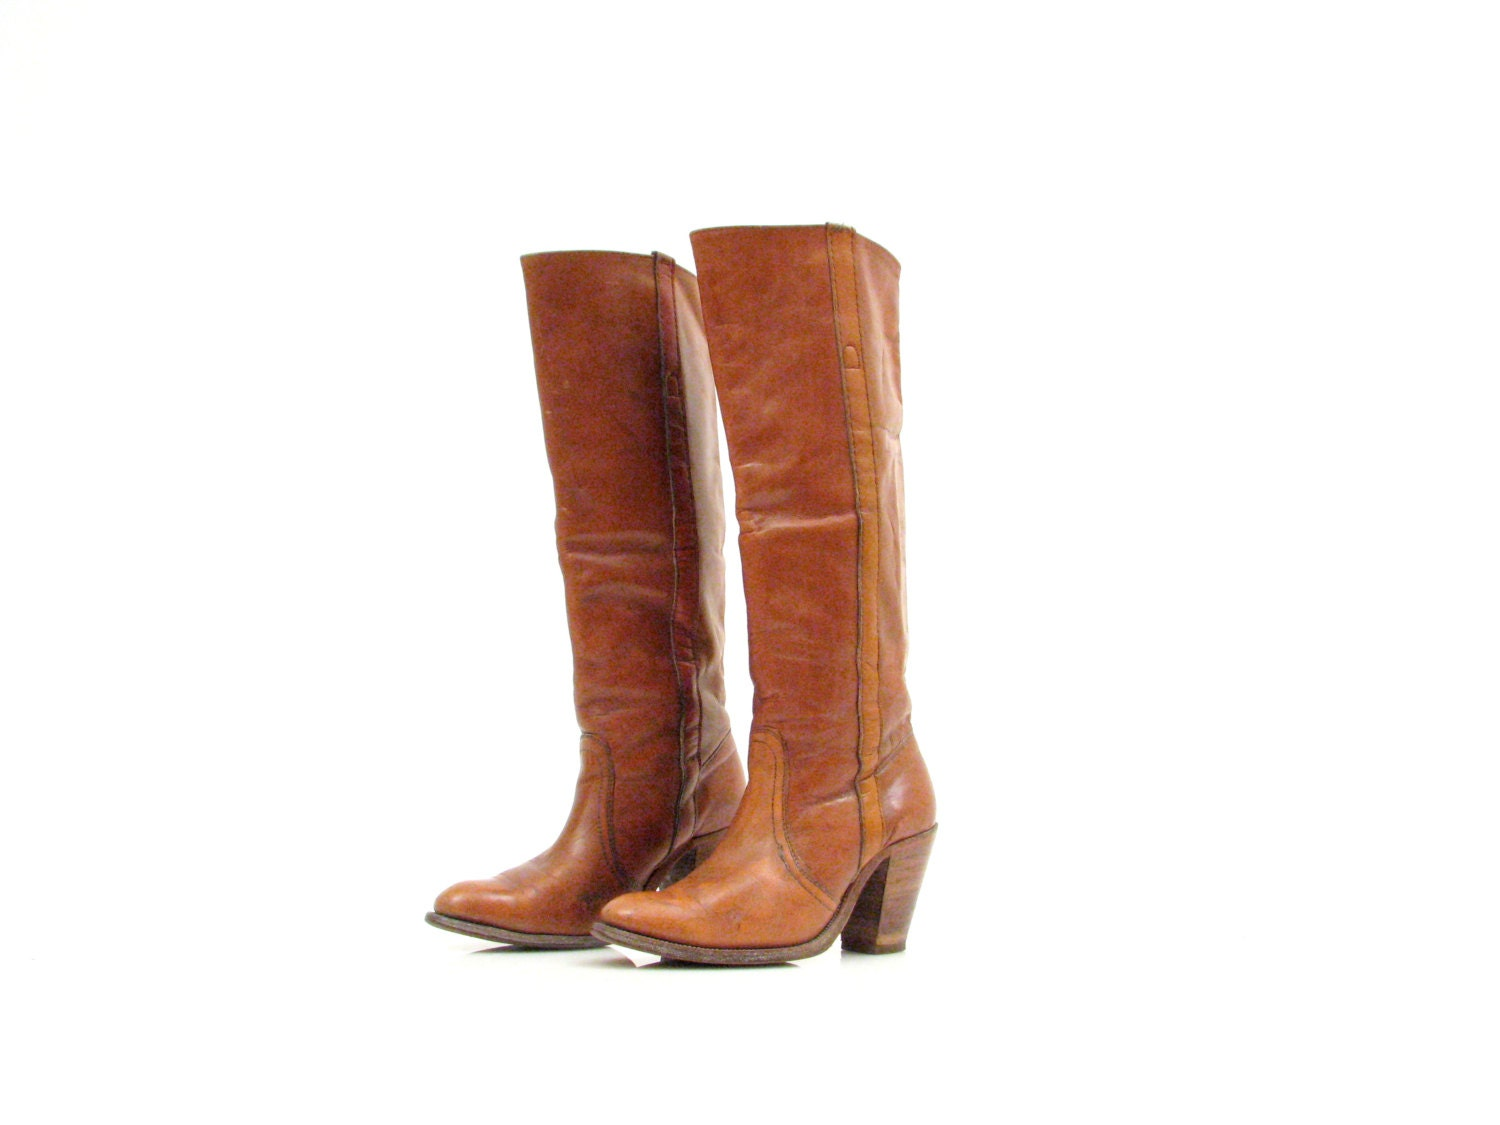 frye boots vintage leather cus boots high heel